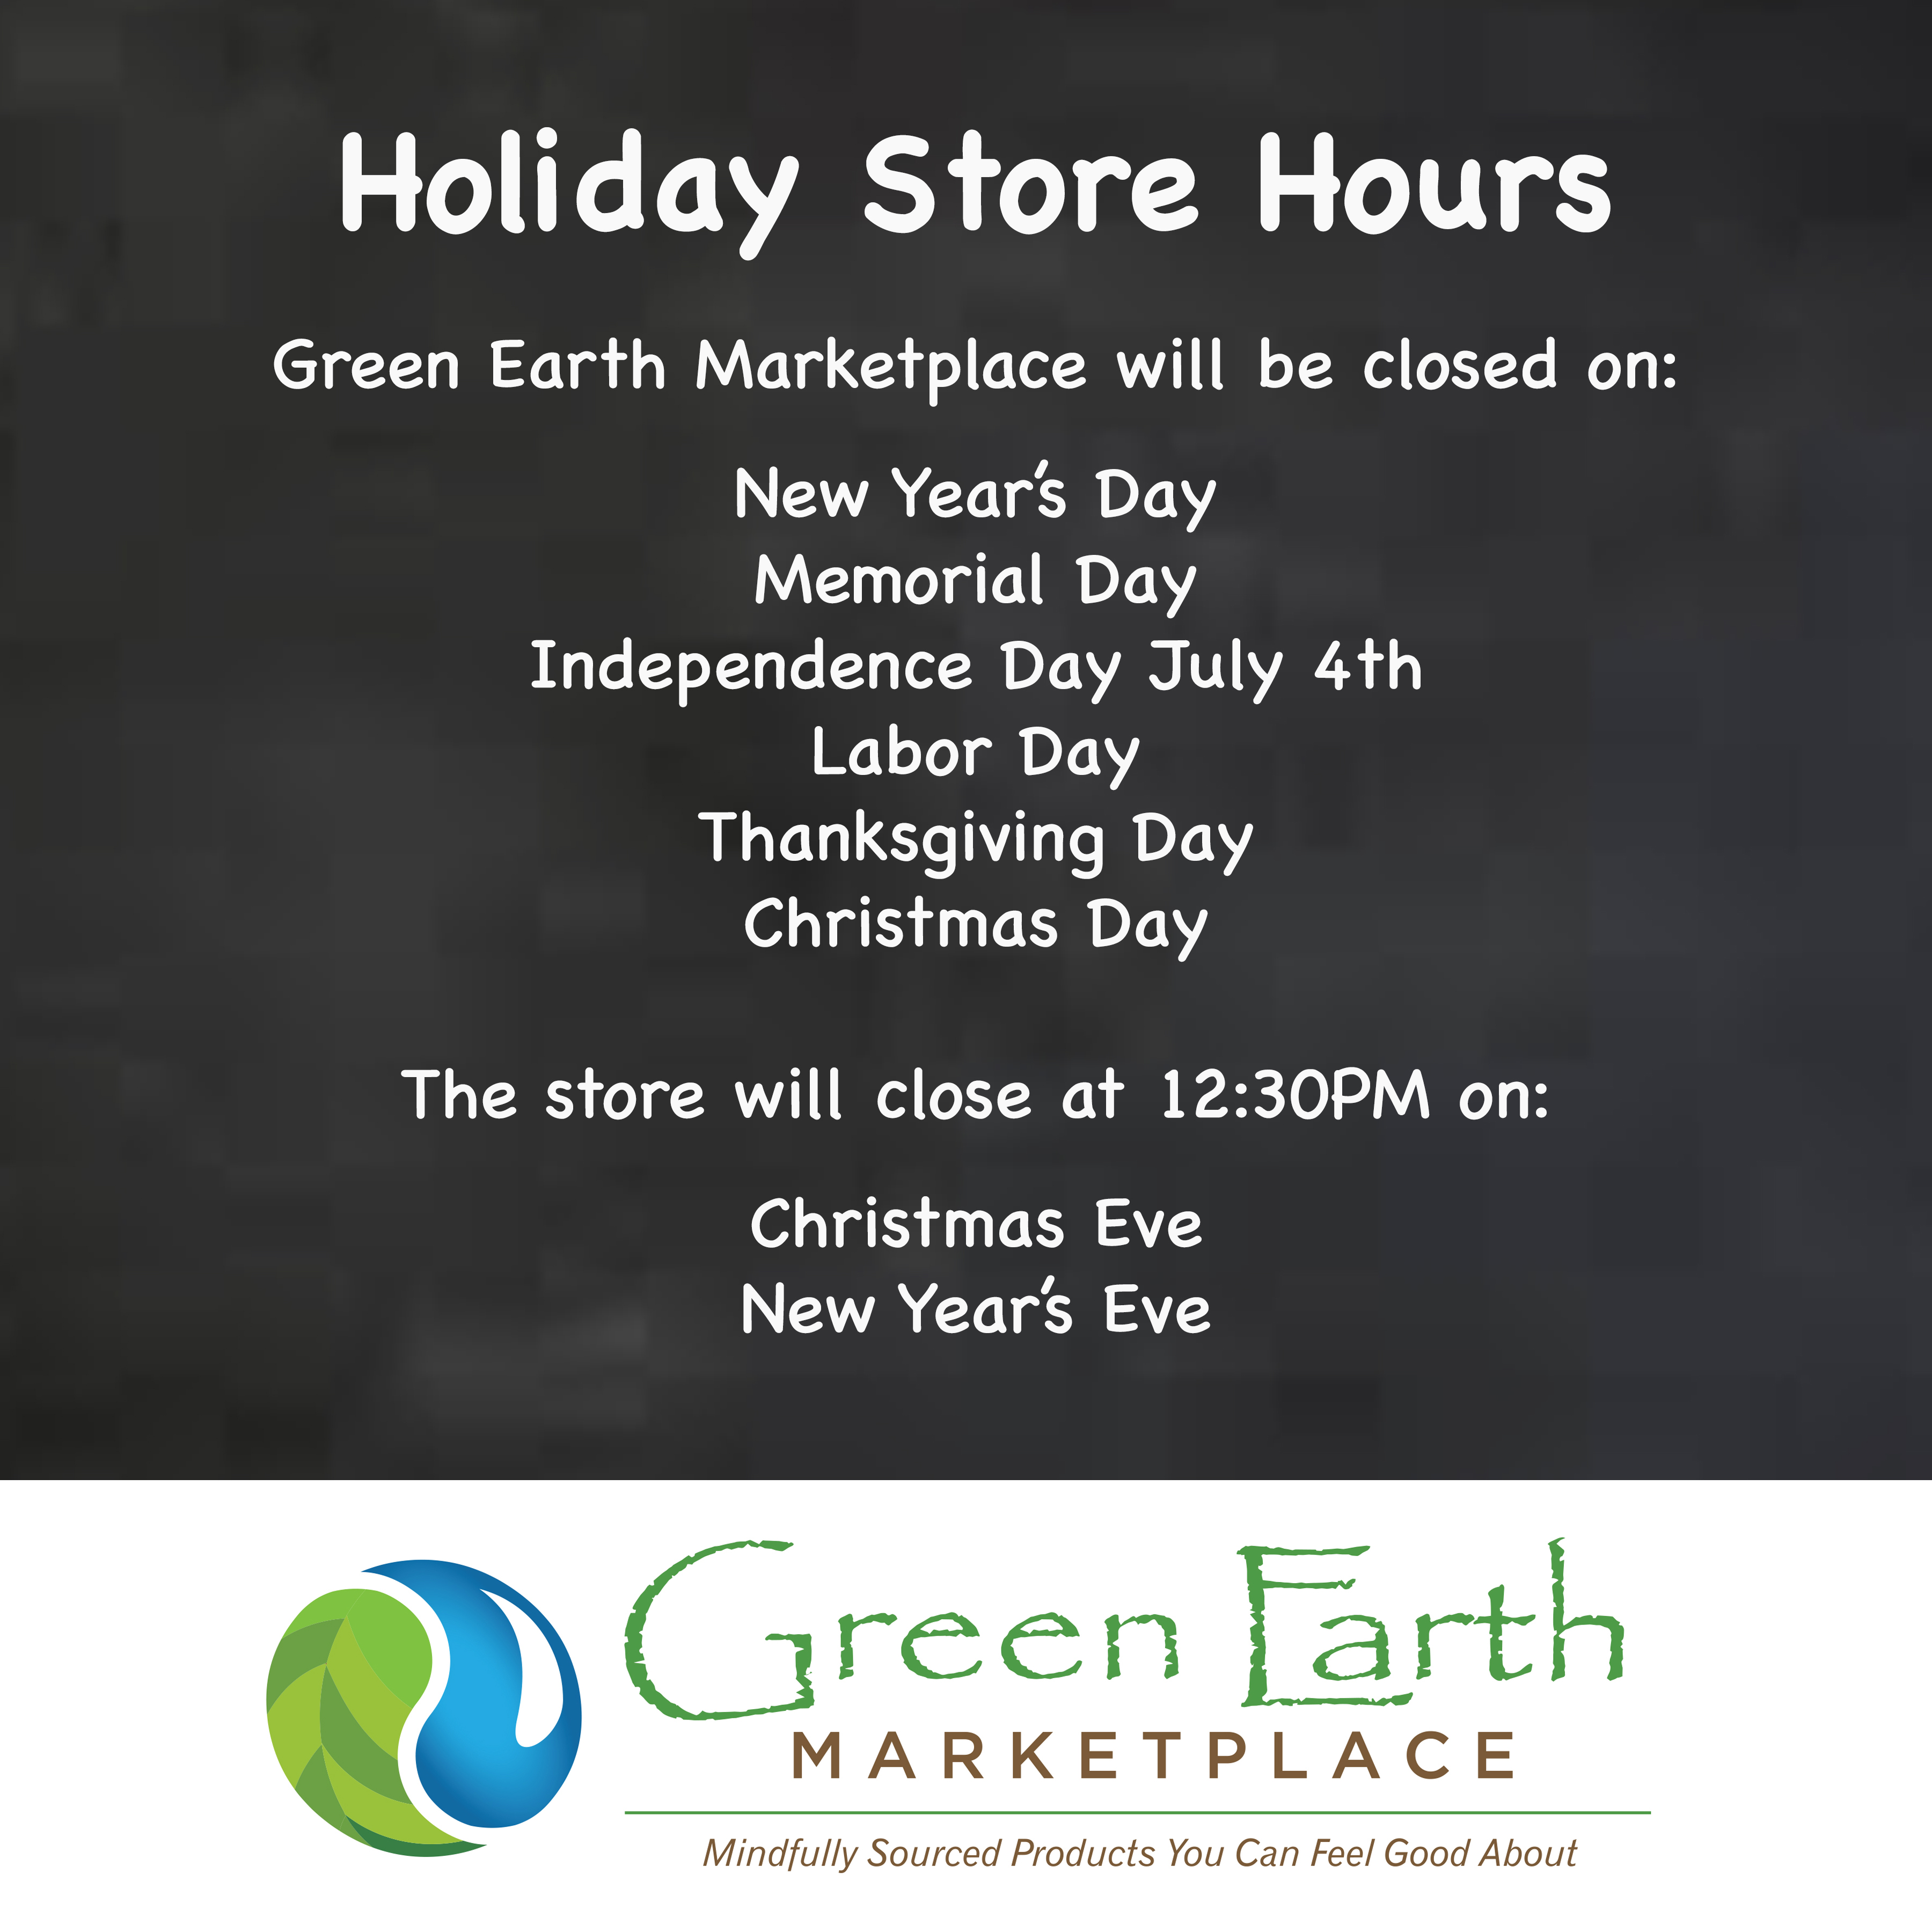 GEM Holiday Schedule